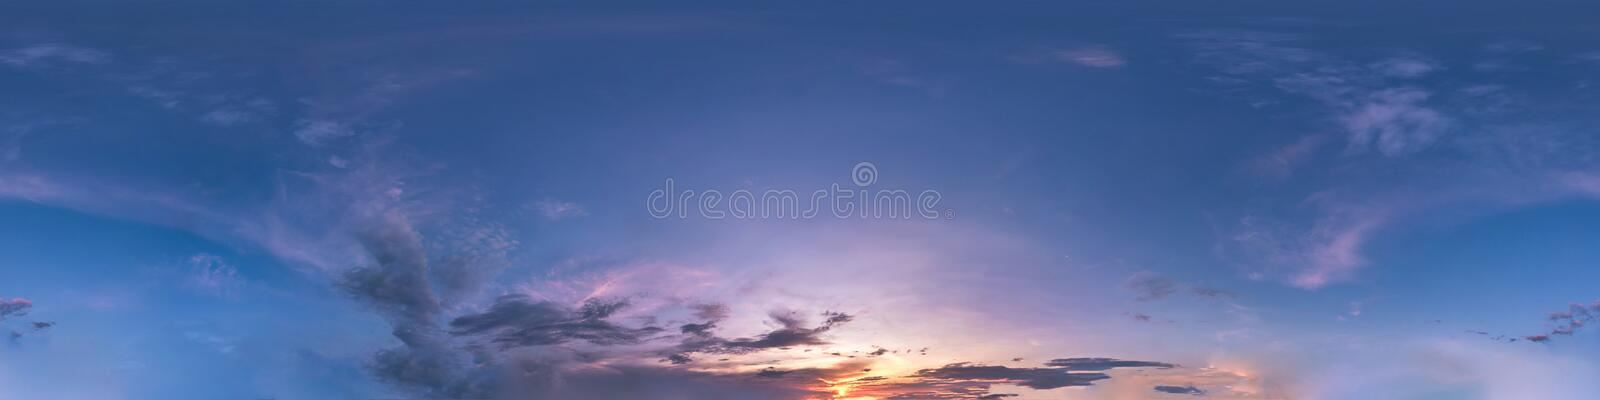 Seamless dark sky before sunset hdri panorama 360 degrees angle view with beautiful clouds for use in 3d graphics or game. Development as sky dome or edit drone royalty free stock photos